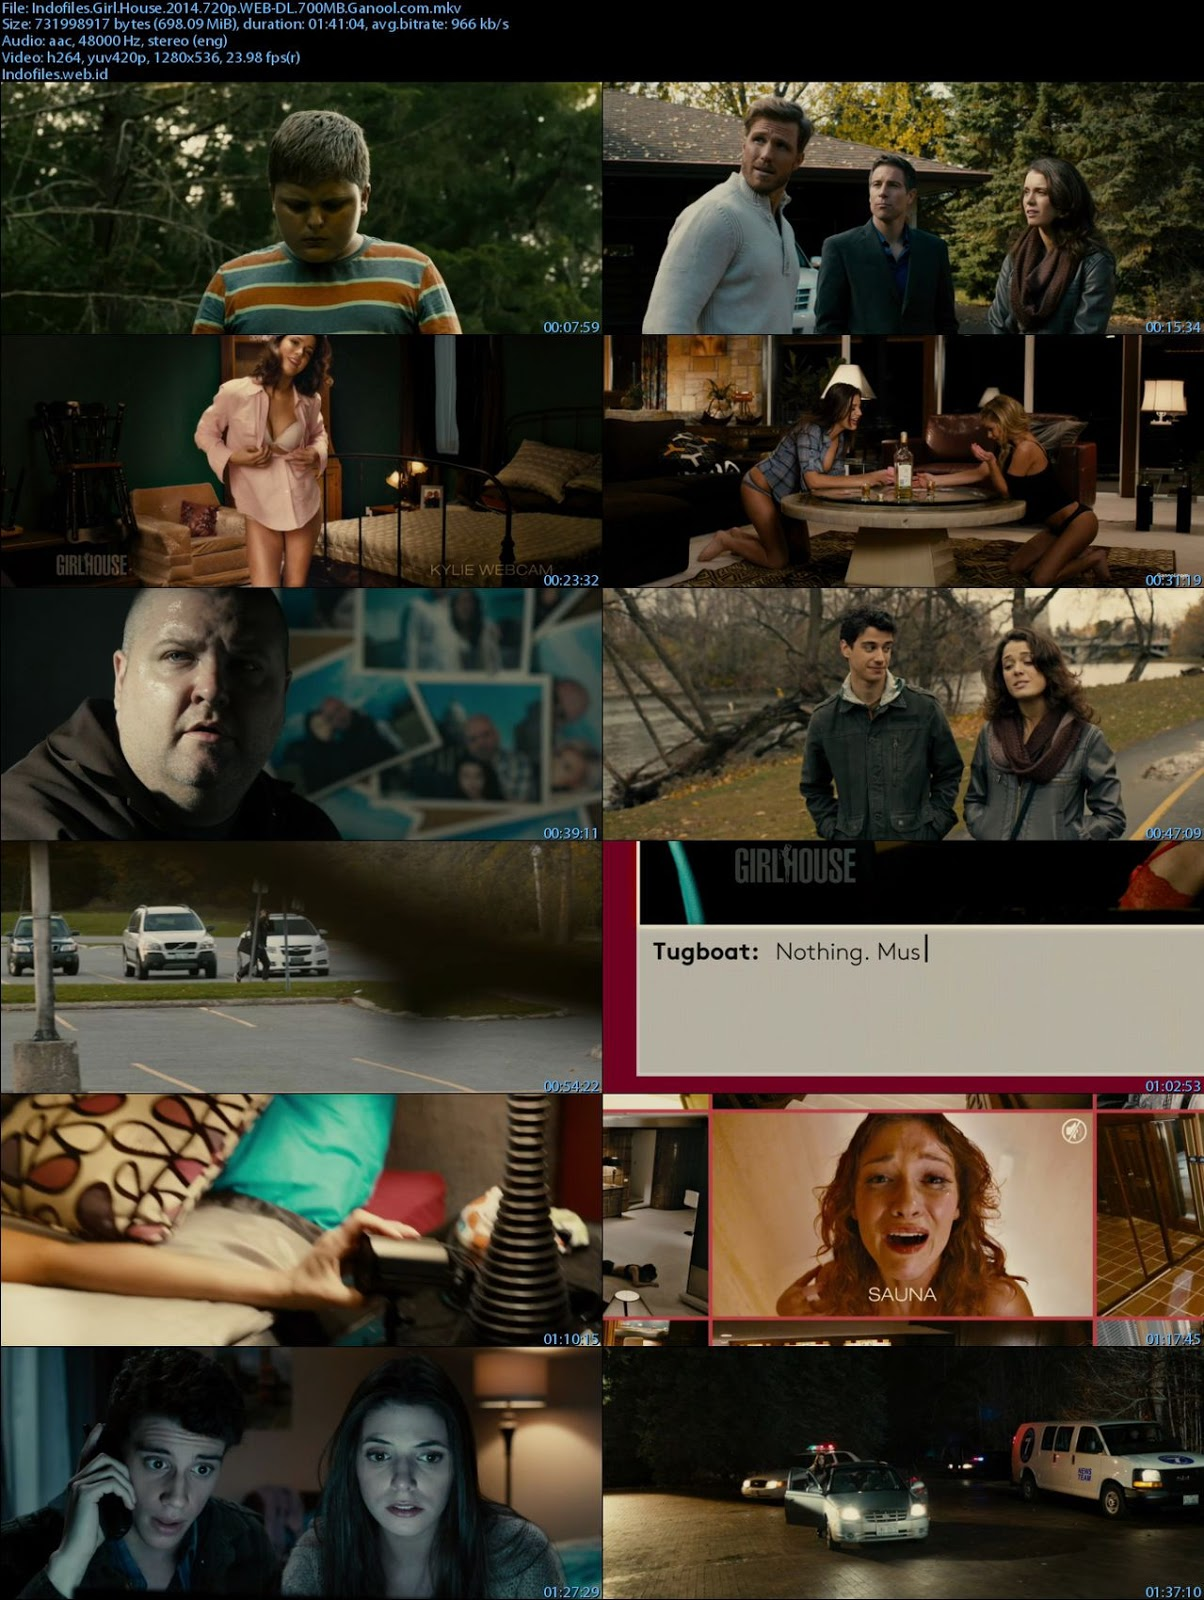 Girl House 2014 Canadian Movie DVDRip Download